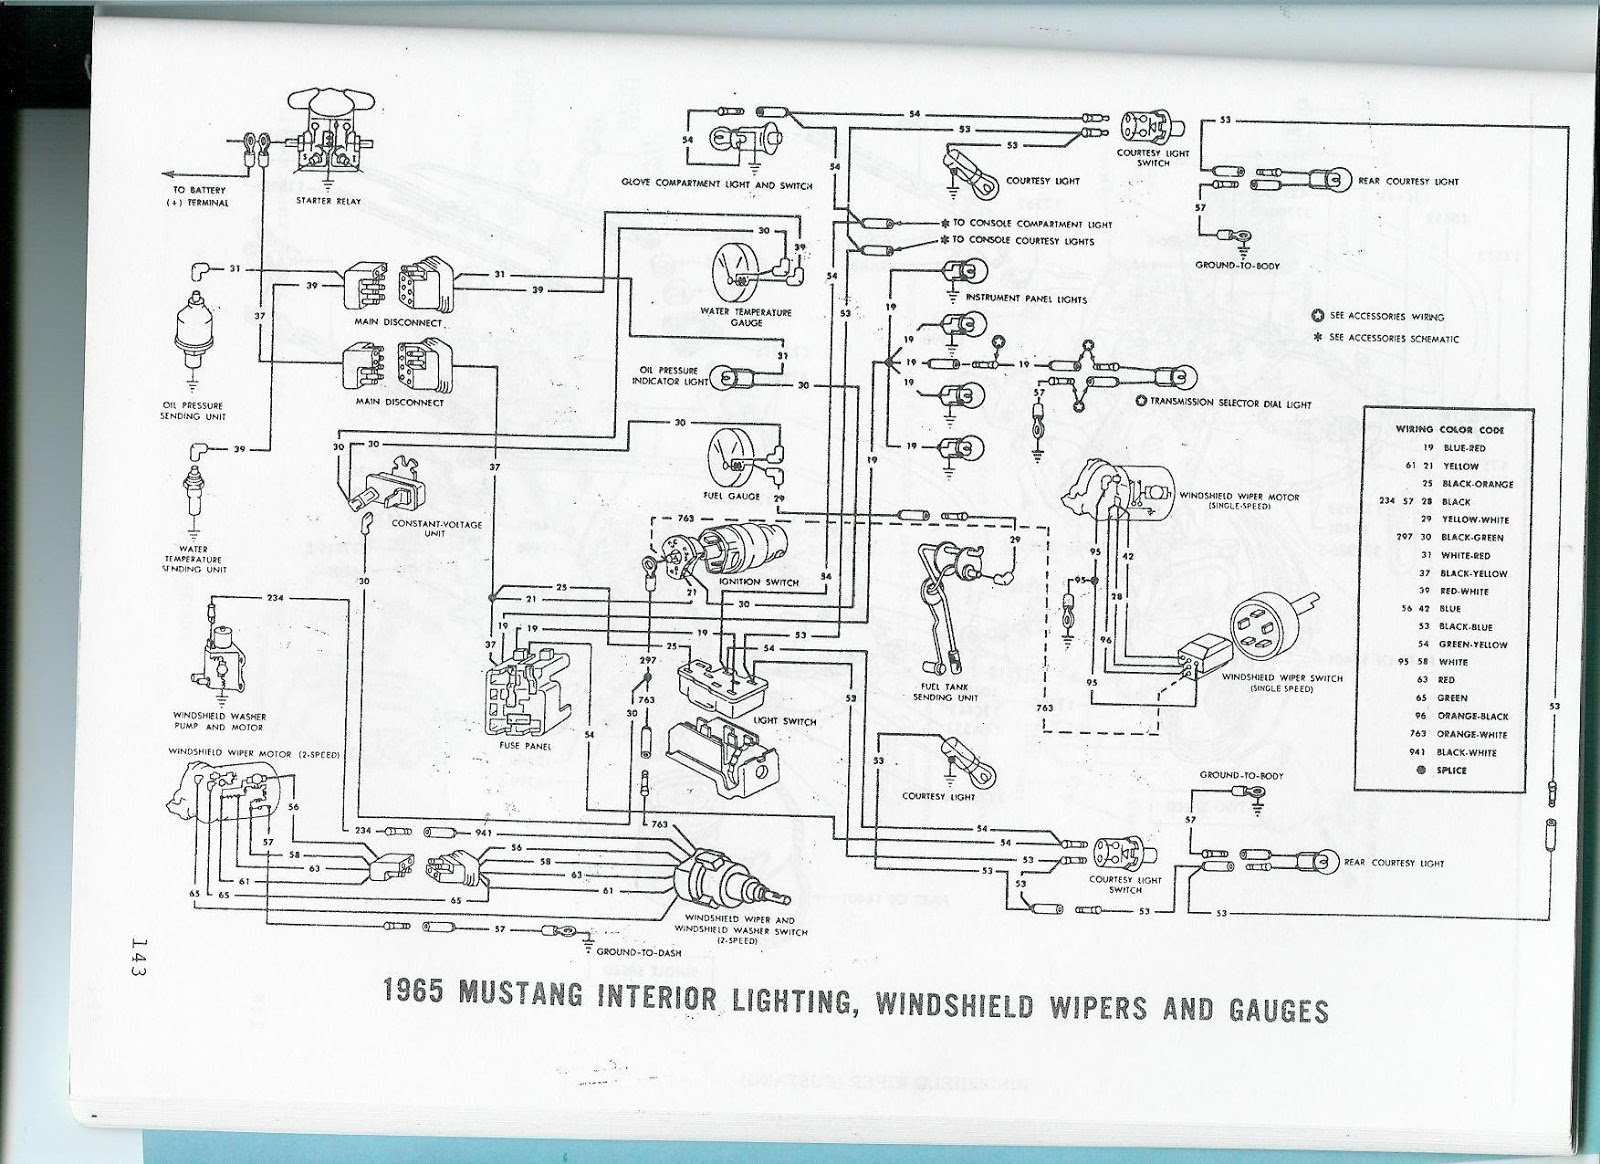 1970 Chevelle Coil Wiring Diagram Ignition 65 Libraries Headlight Librarythe Care And Feeding Of Ponies 1965 Mustang Diagrams